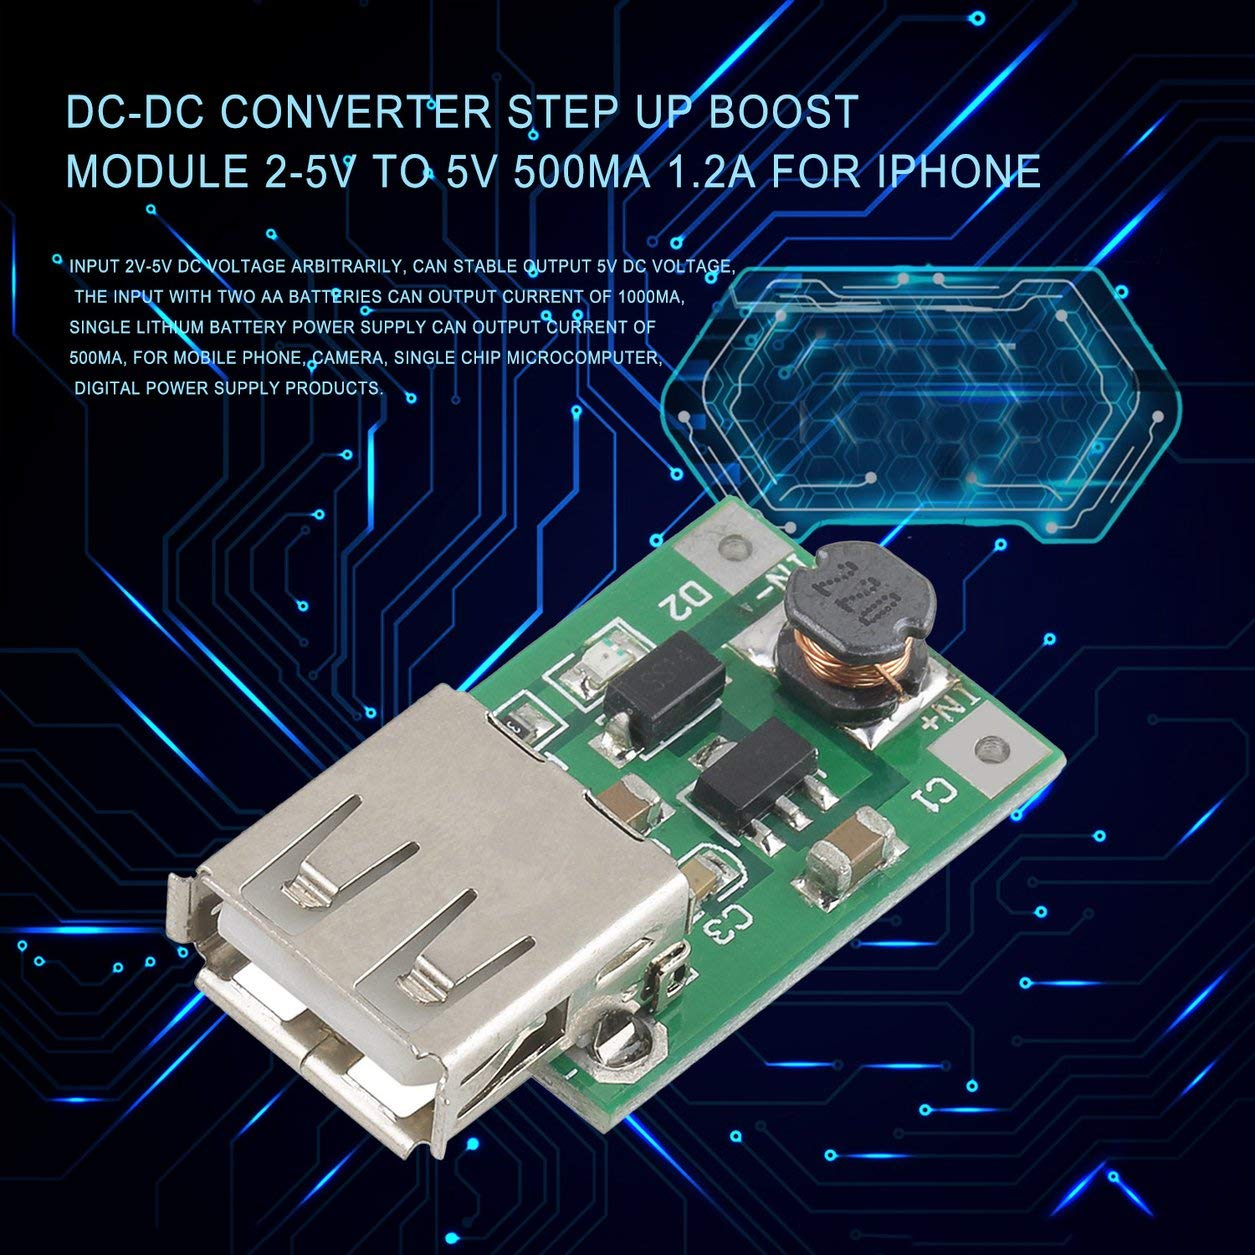 1pc DC-DC Converter Step Up Boost Module 2-5V to 5V 1200mA 1.2A for iphone Hotest Top Selling Super Deals